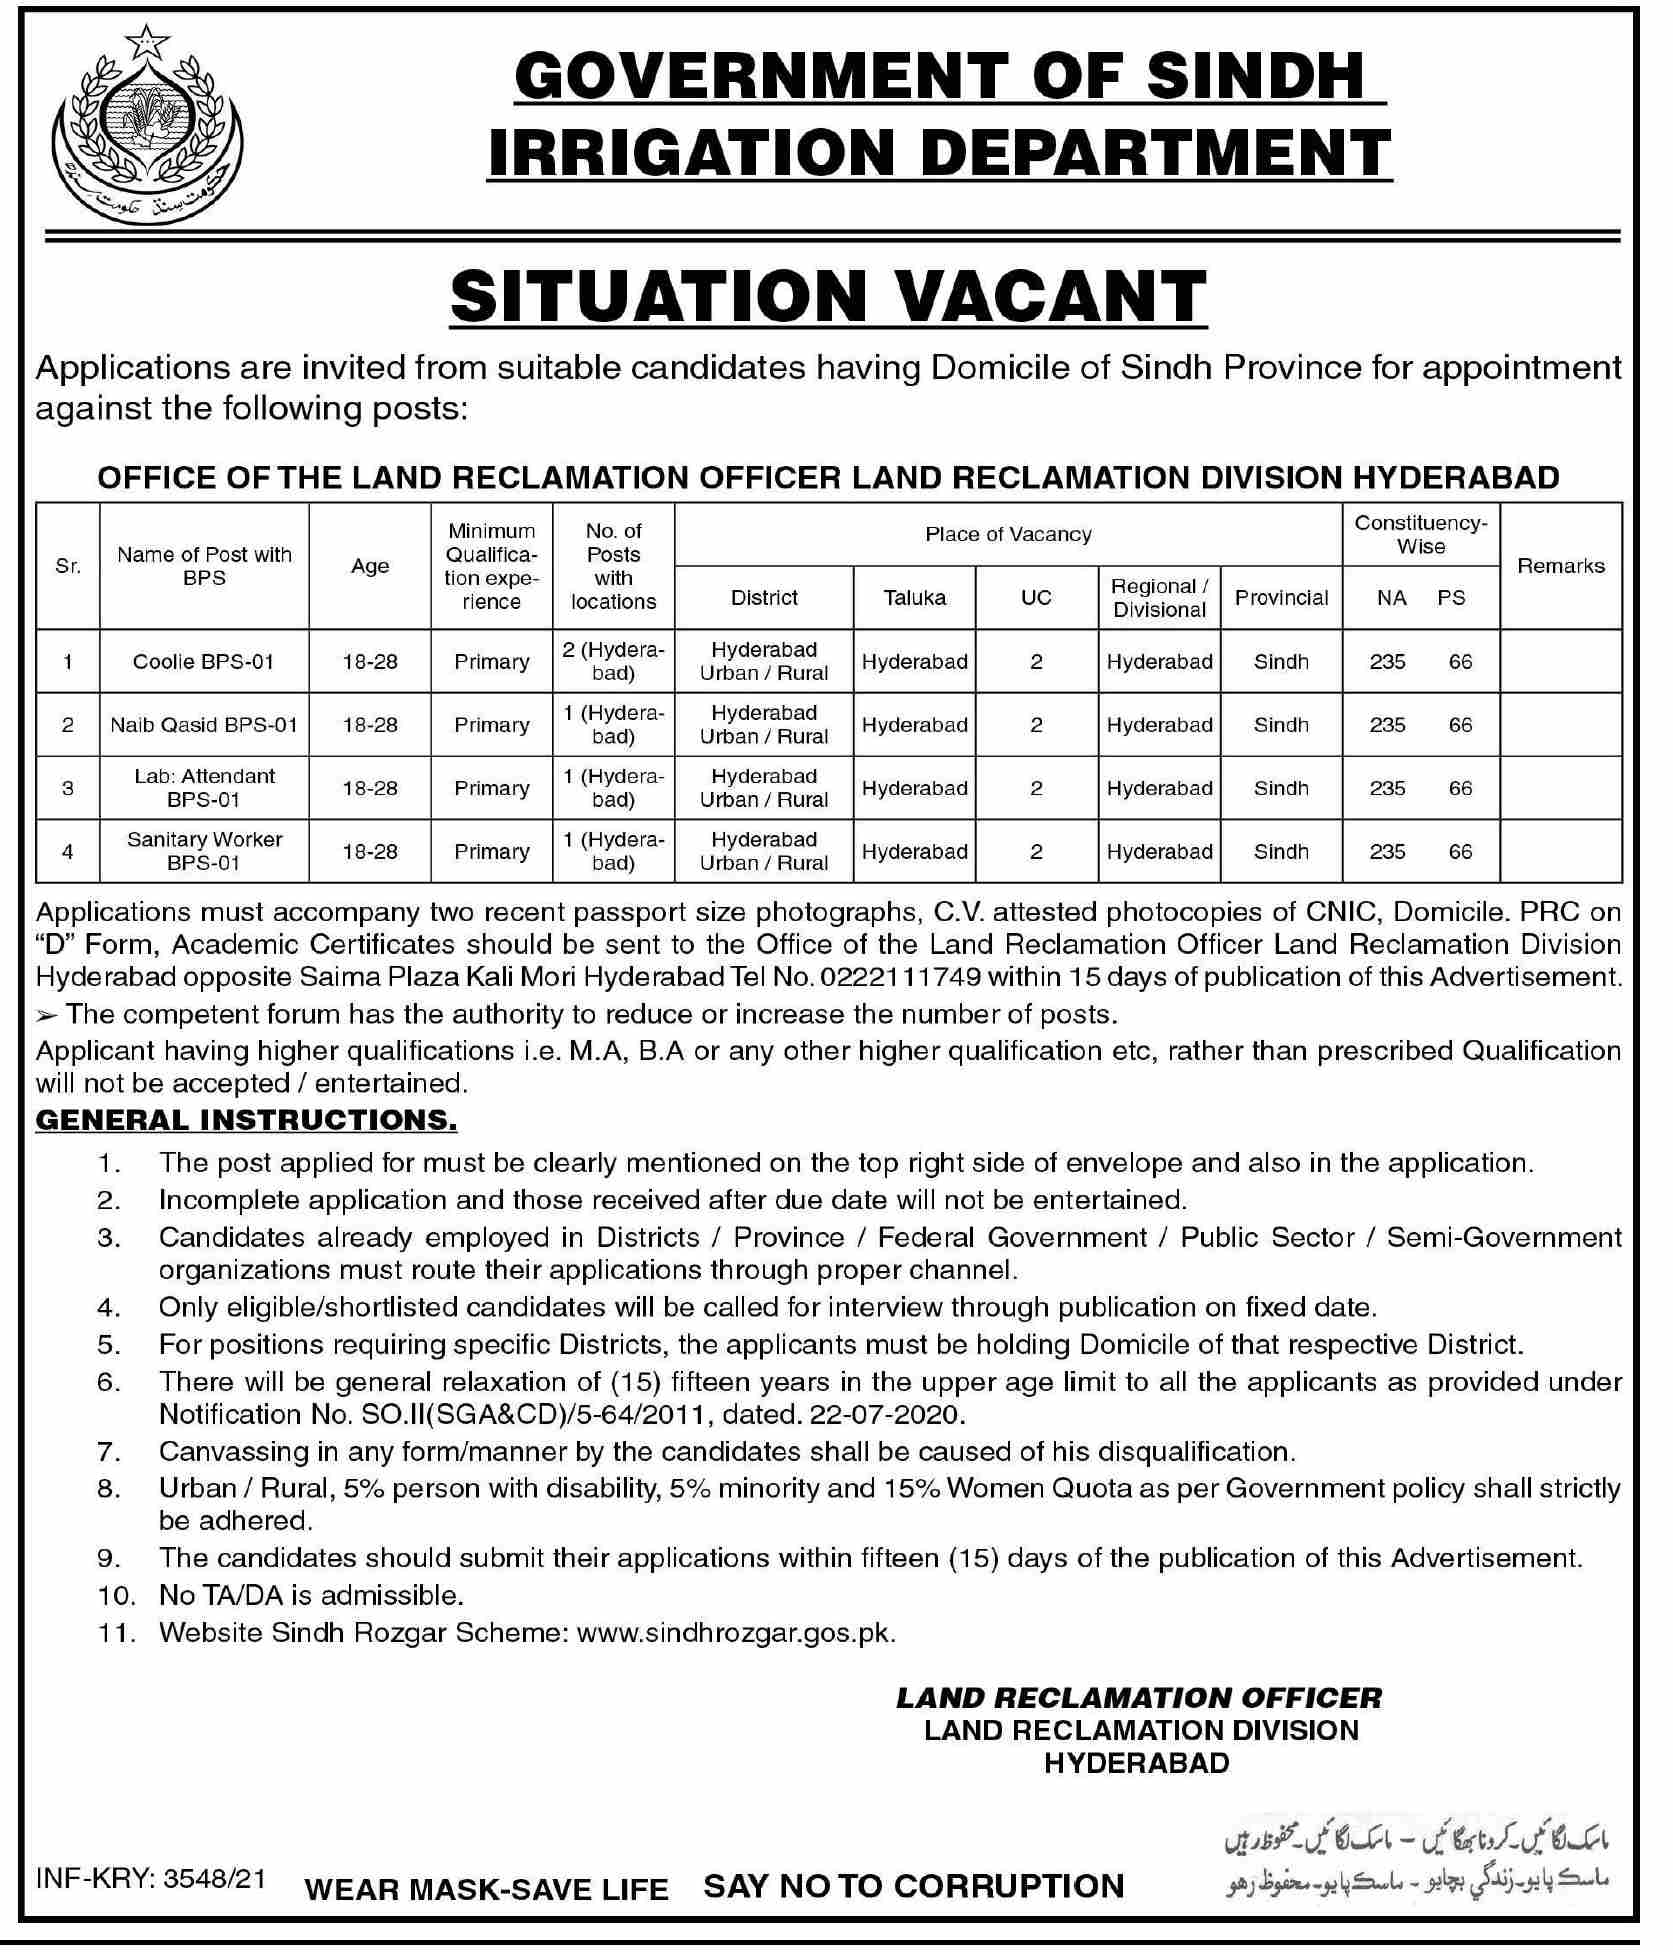 Government of Sindh Irrigation Department Jobs Latest September 2021